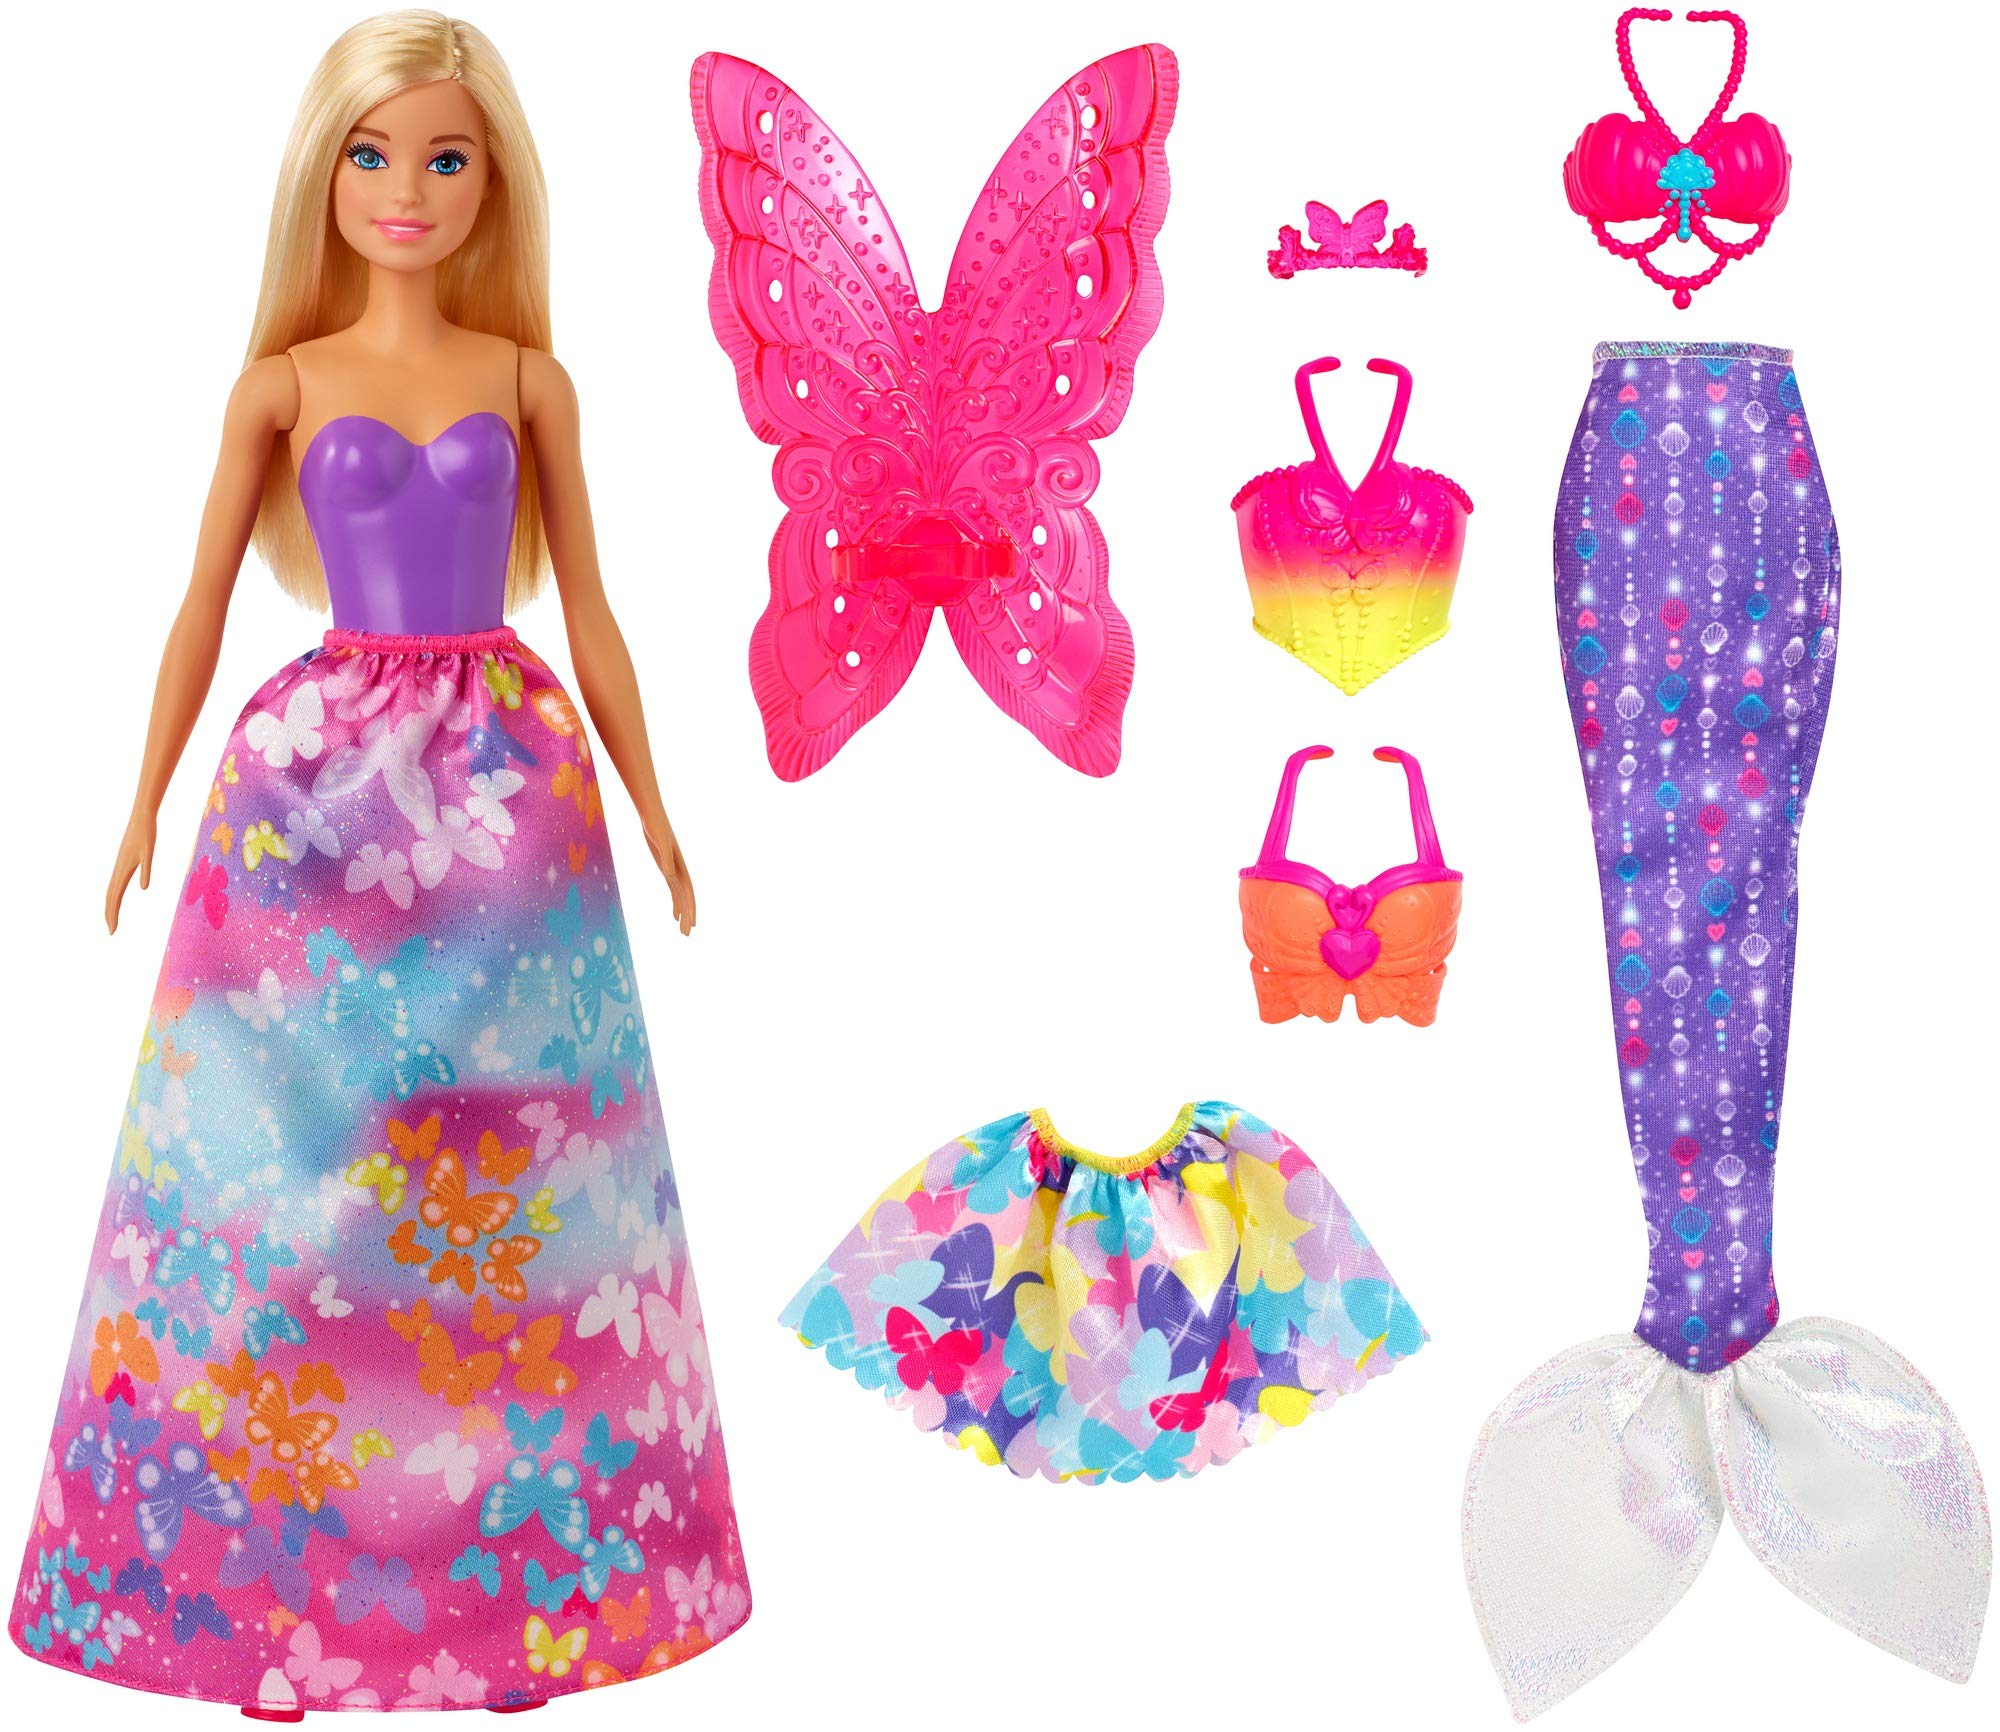 Barbie Dreamtopia Dress Up Doll Gift Set, 12.5-Inch, Blonde with Princess, Fairy and Mermaid Costumes, Gift for 3 to 7 Year Olds, Multicolor